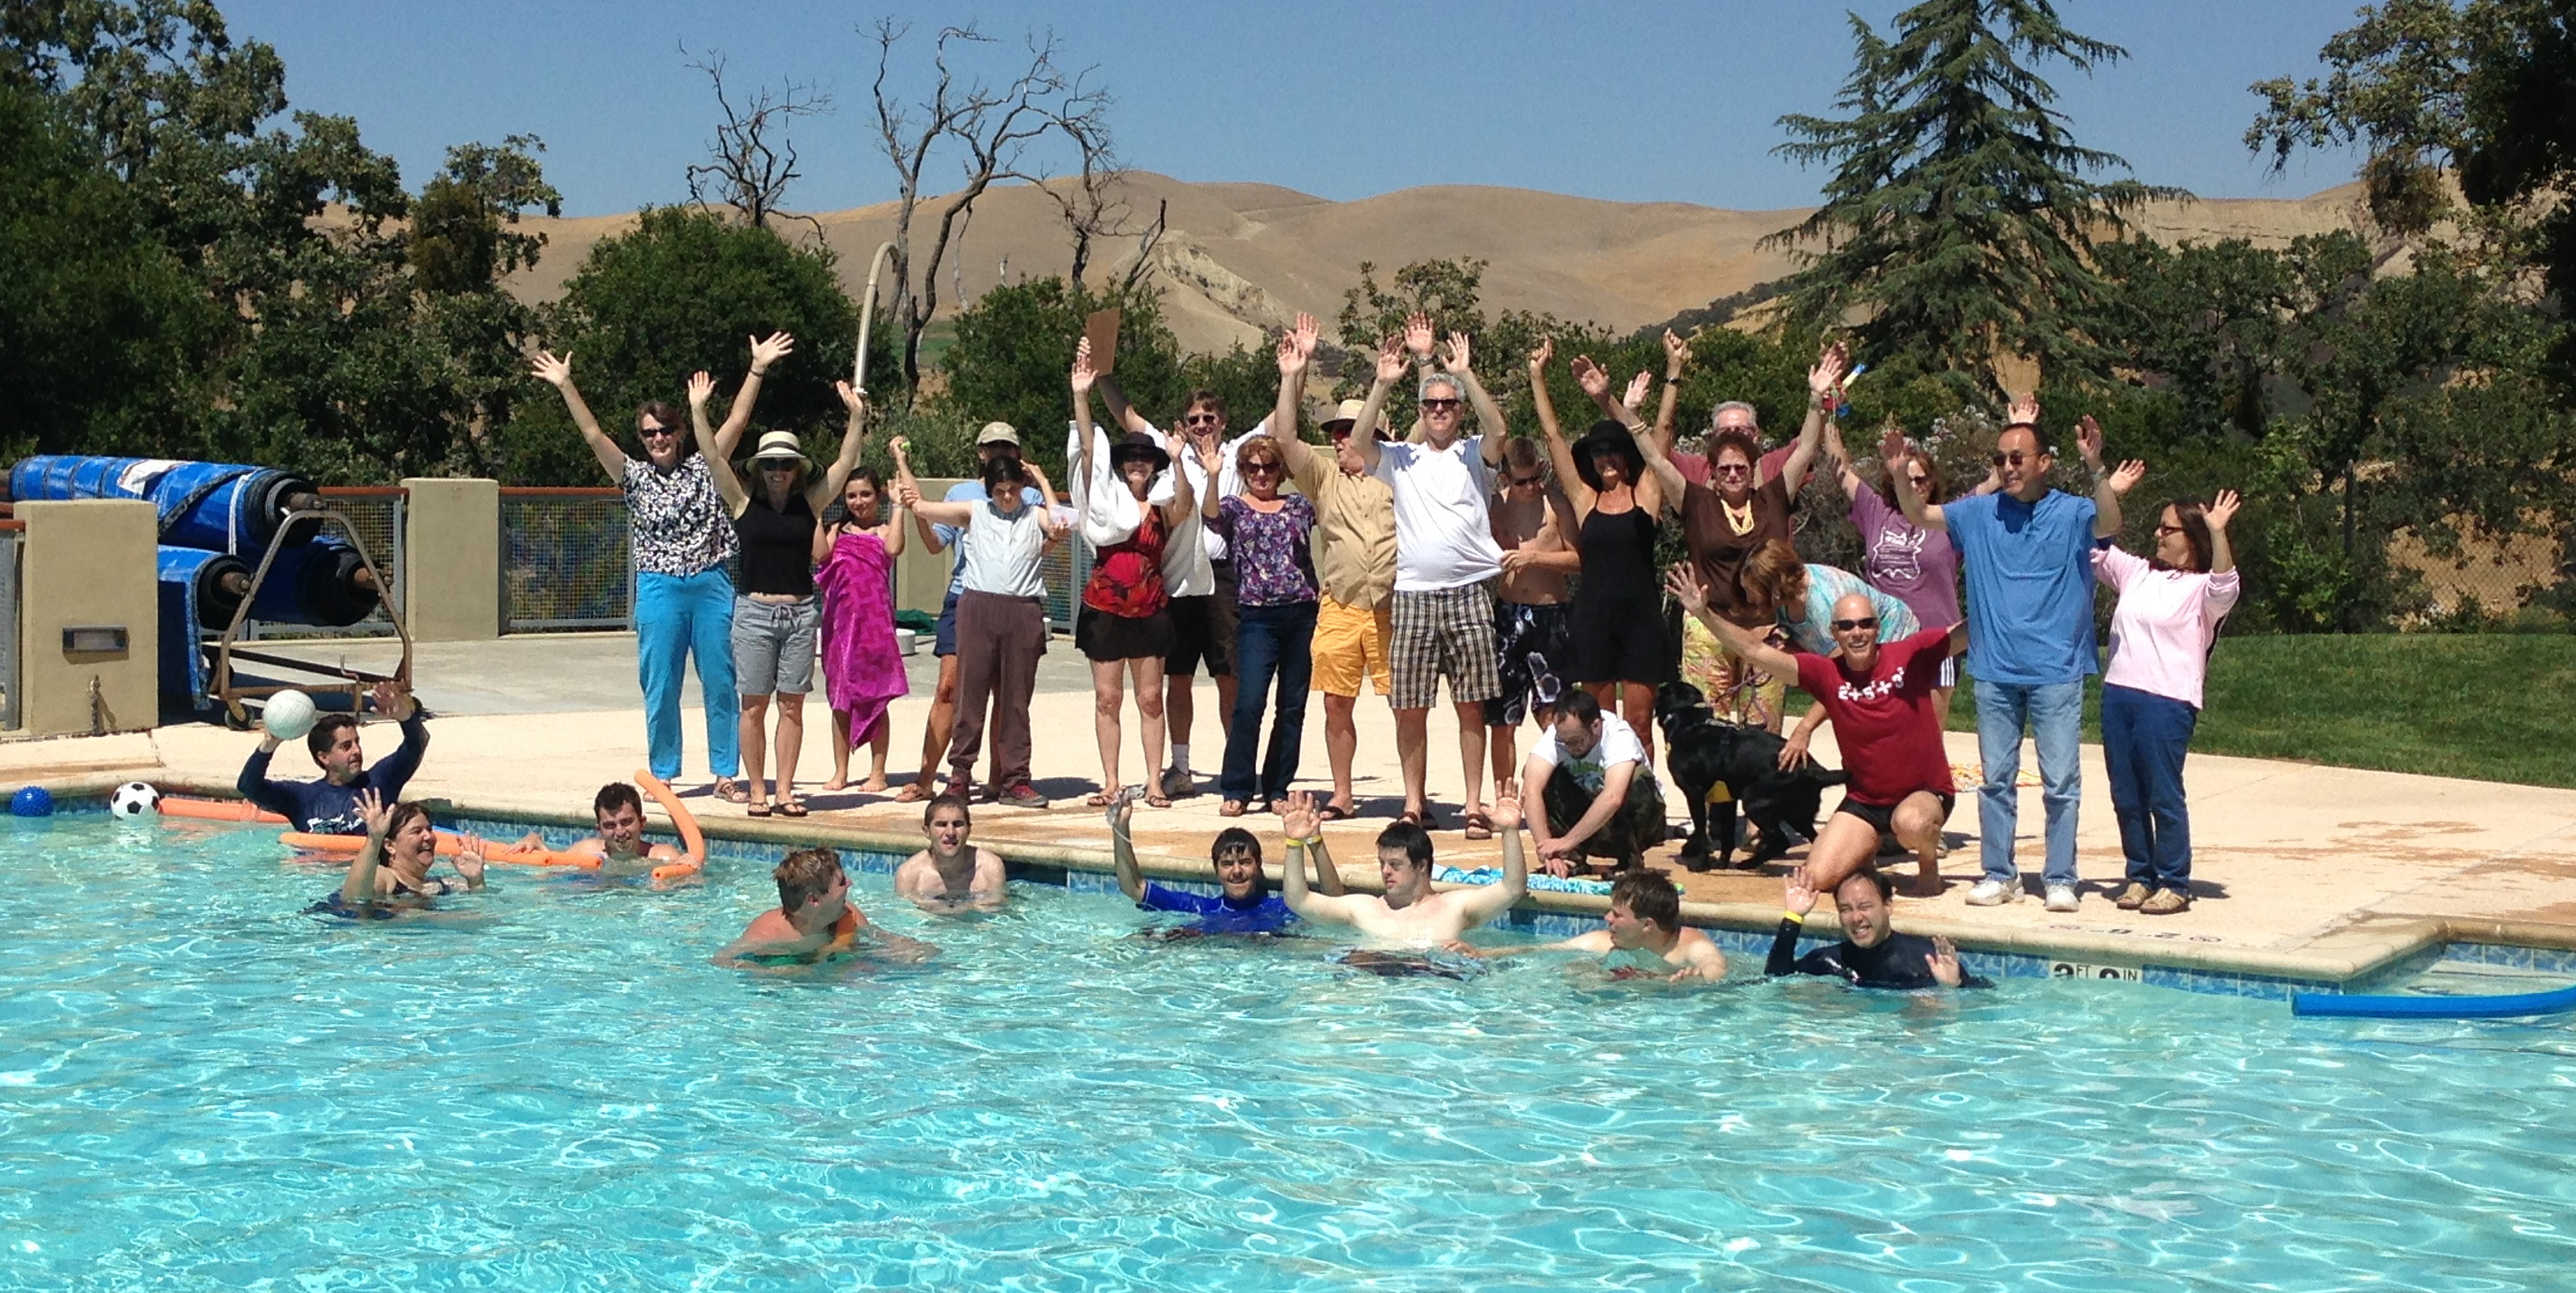 Great Fun At Camp Arroyo Pool Event Sunflower Hill